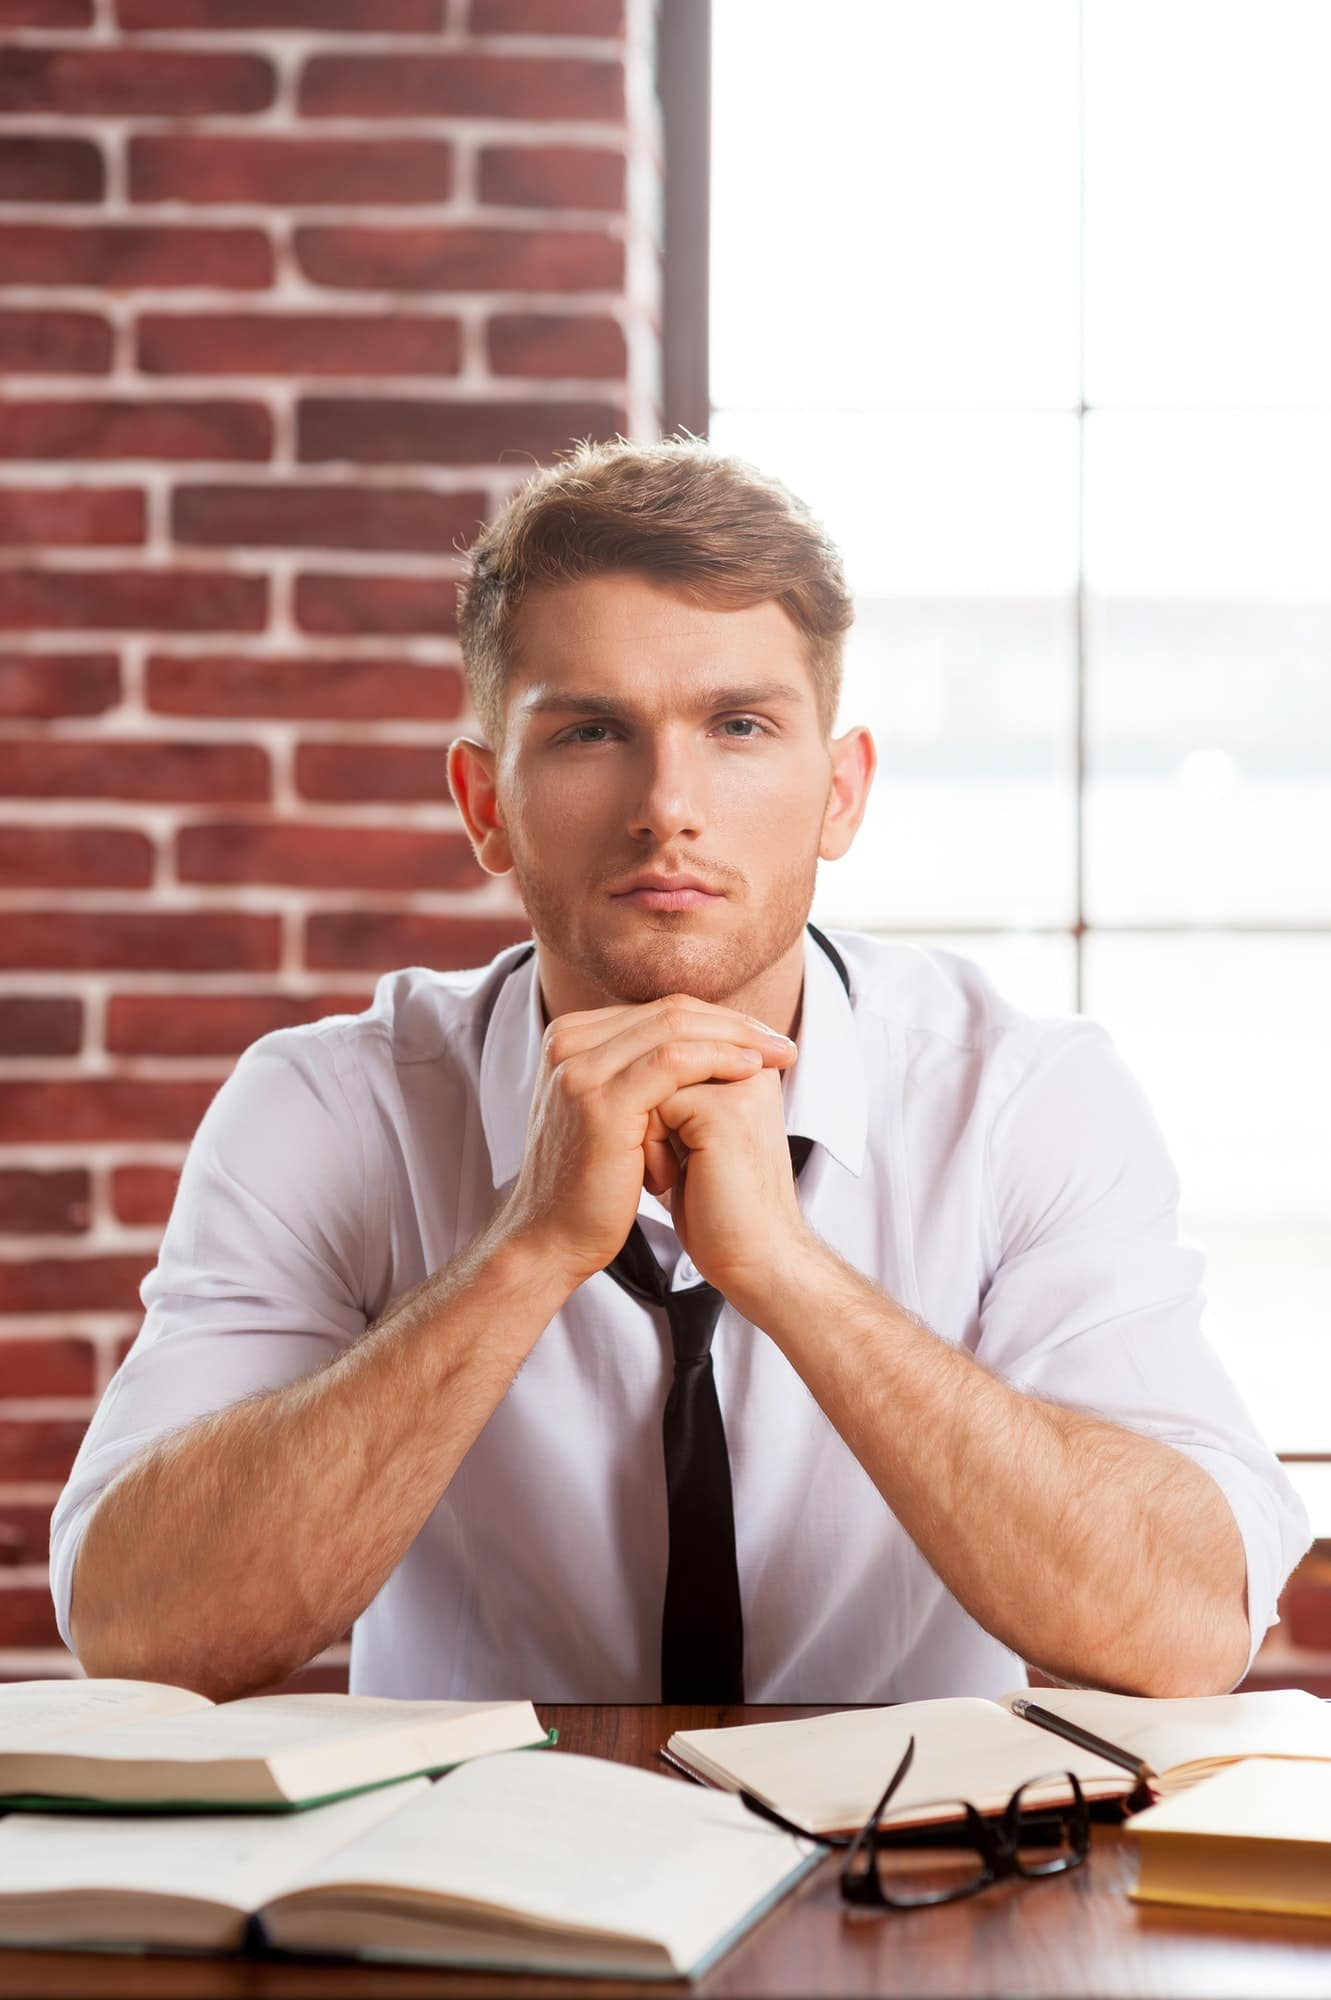 Only creative thinking. Thoughtful young man in shirt and tie holding hands clasped and looking at